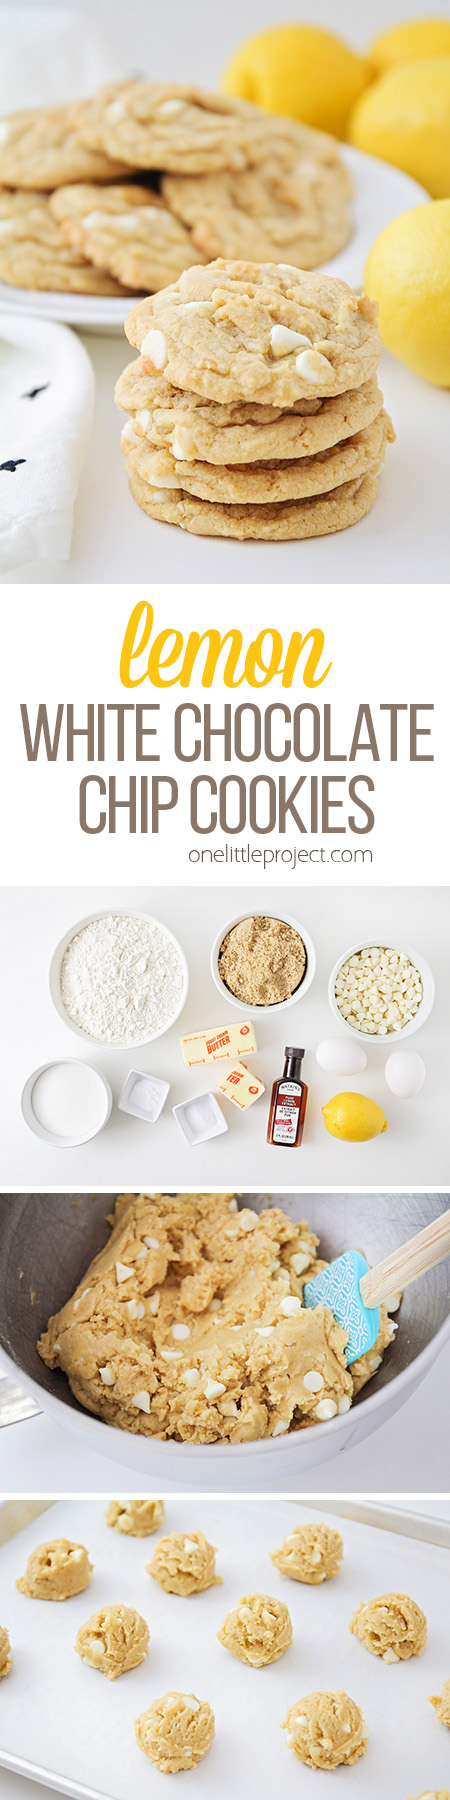 These lemon white chocolate cookies are a fun and delicious twist on classic chocolate chip cookies! They're so soft and chewy, with a sweet lemon flavor!